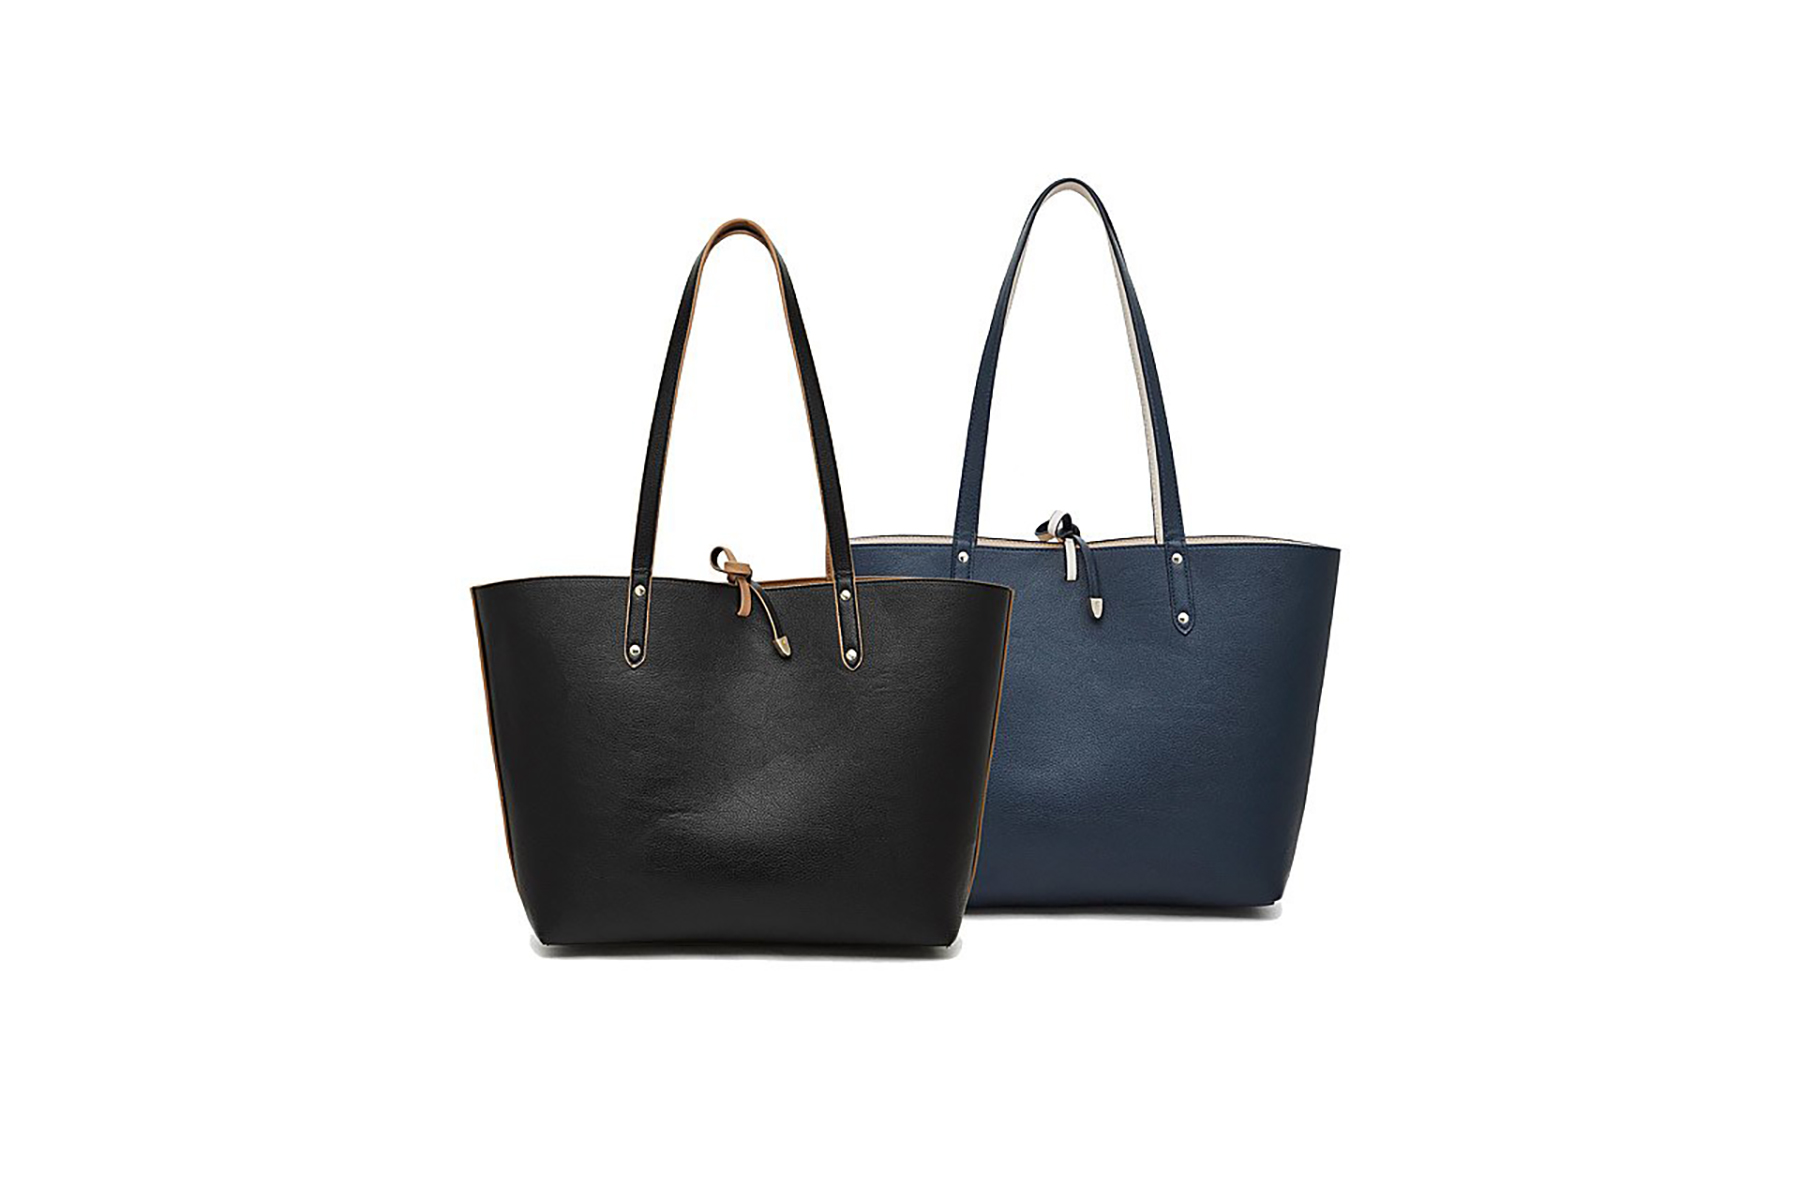 b7c56604635b We Tested 20 Different Tote Bags—These Are the Only Ones Worth Buying